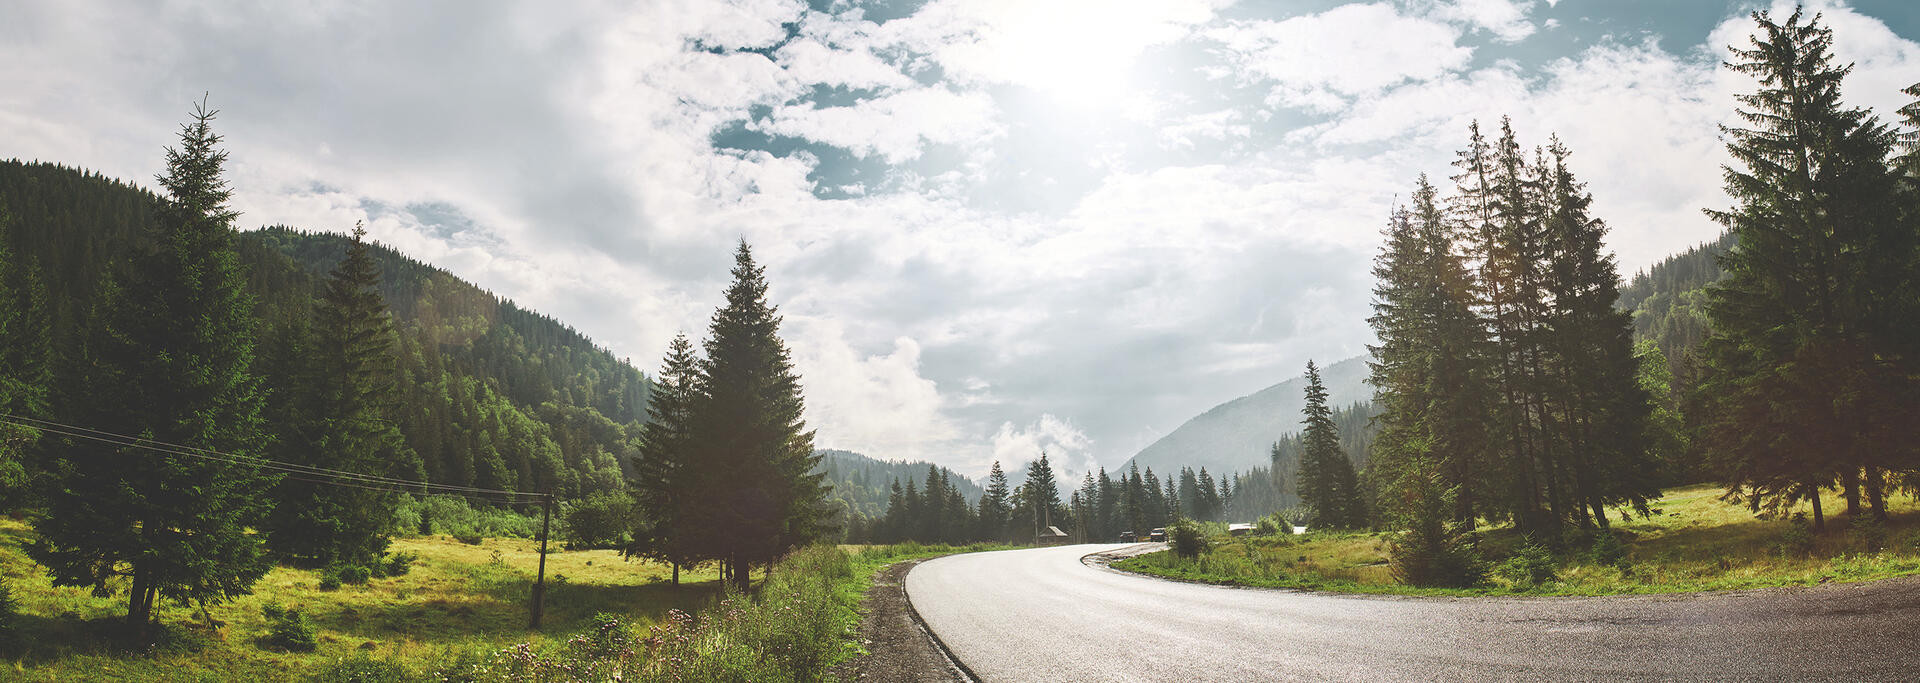 scenery mountain road in the Carpathians mountains, Ukraine